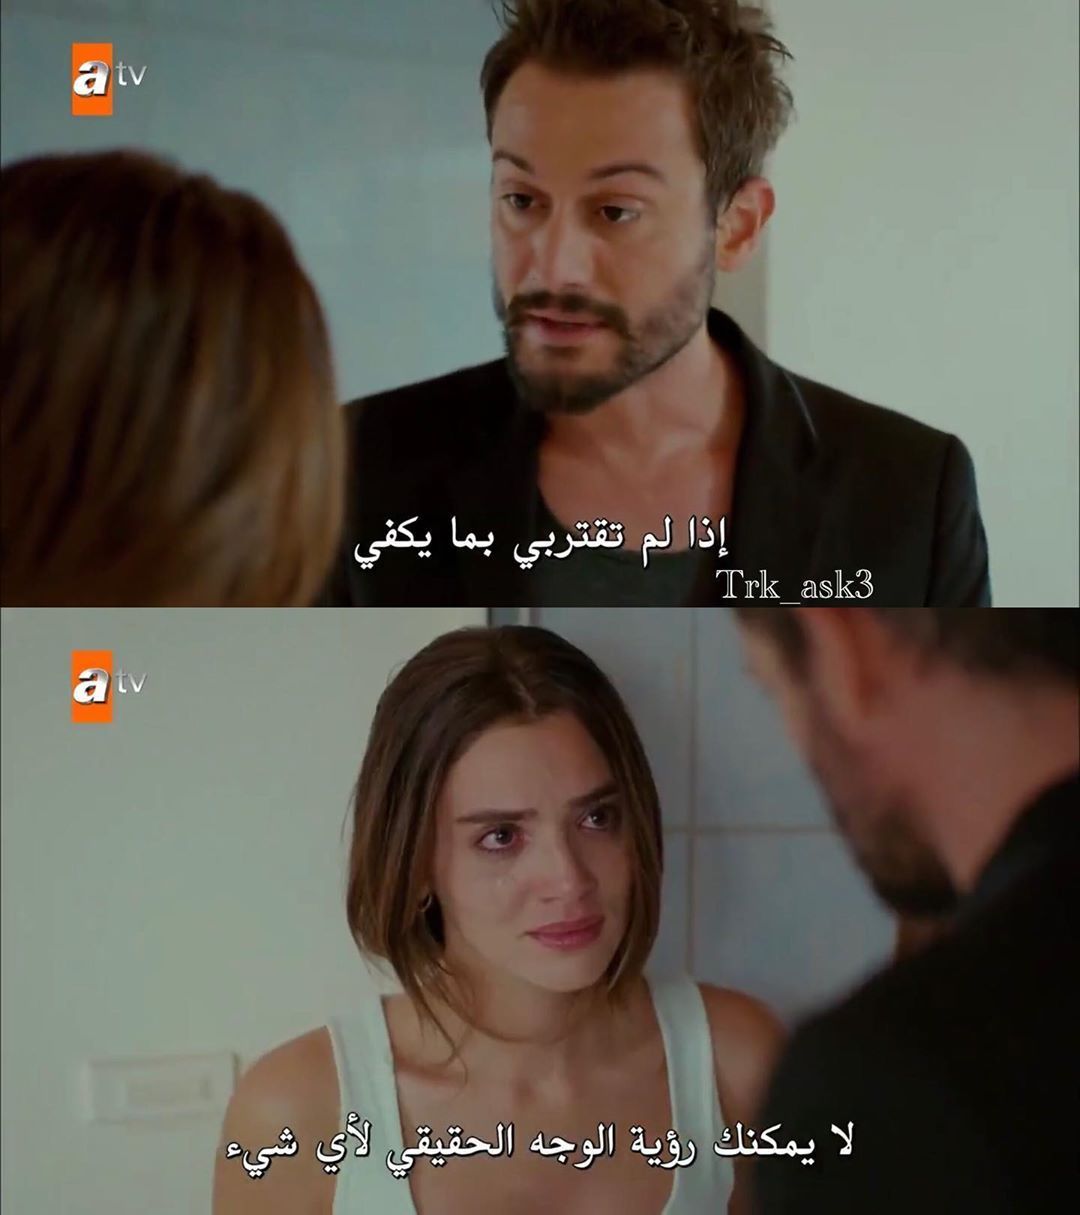 Pin By Alyaa On Quotes From Drama Turkish Quotes Movie Quotes Movie Captions